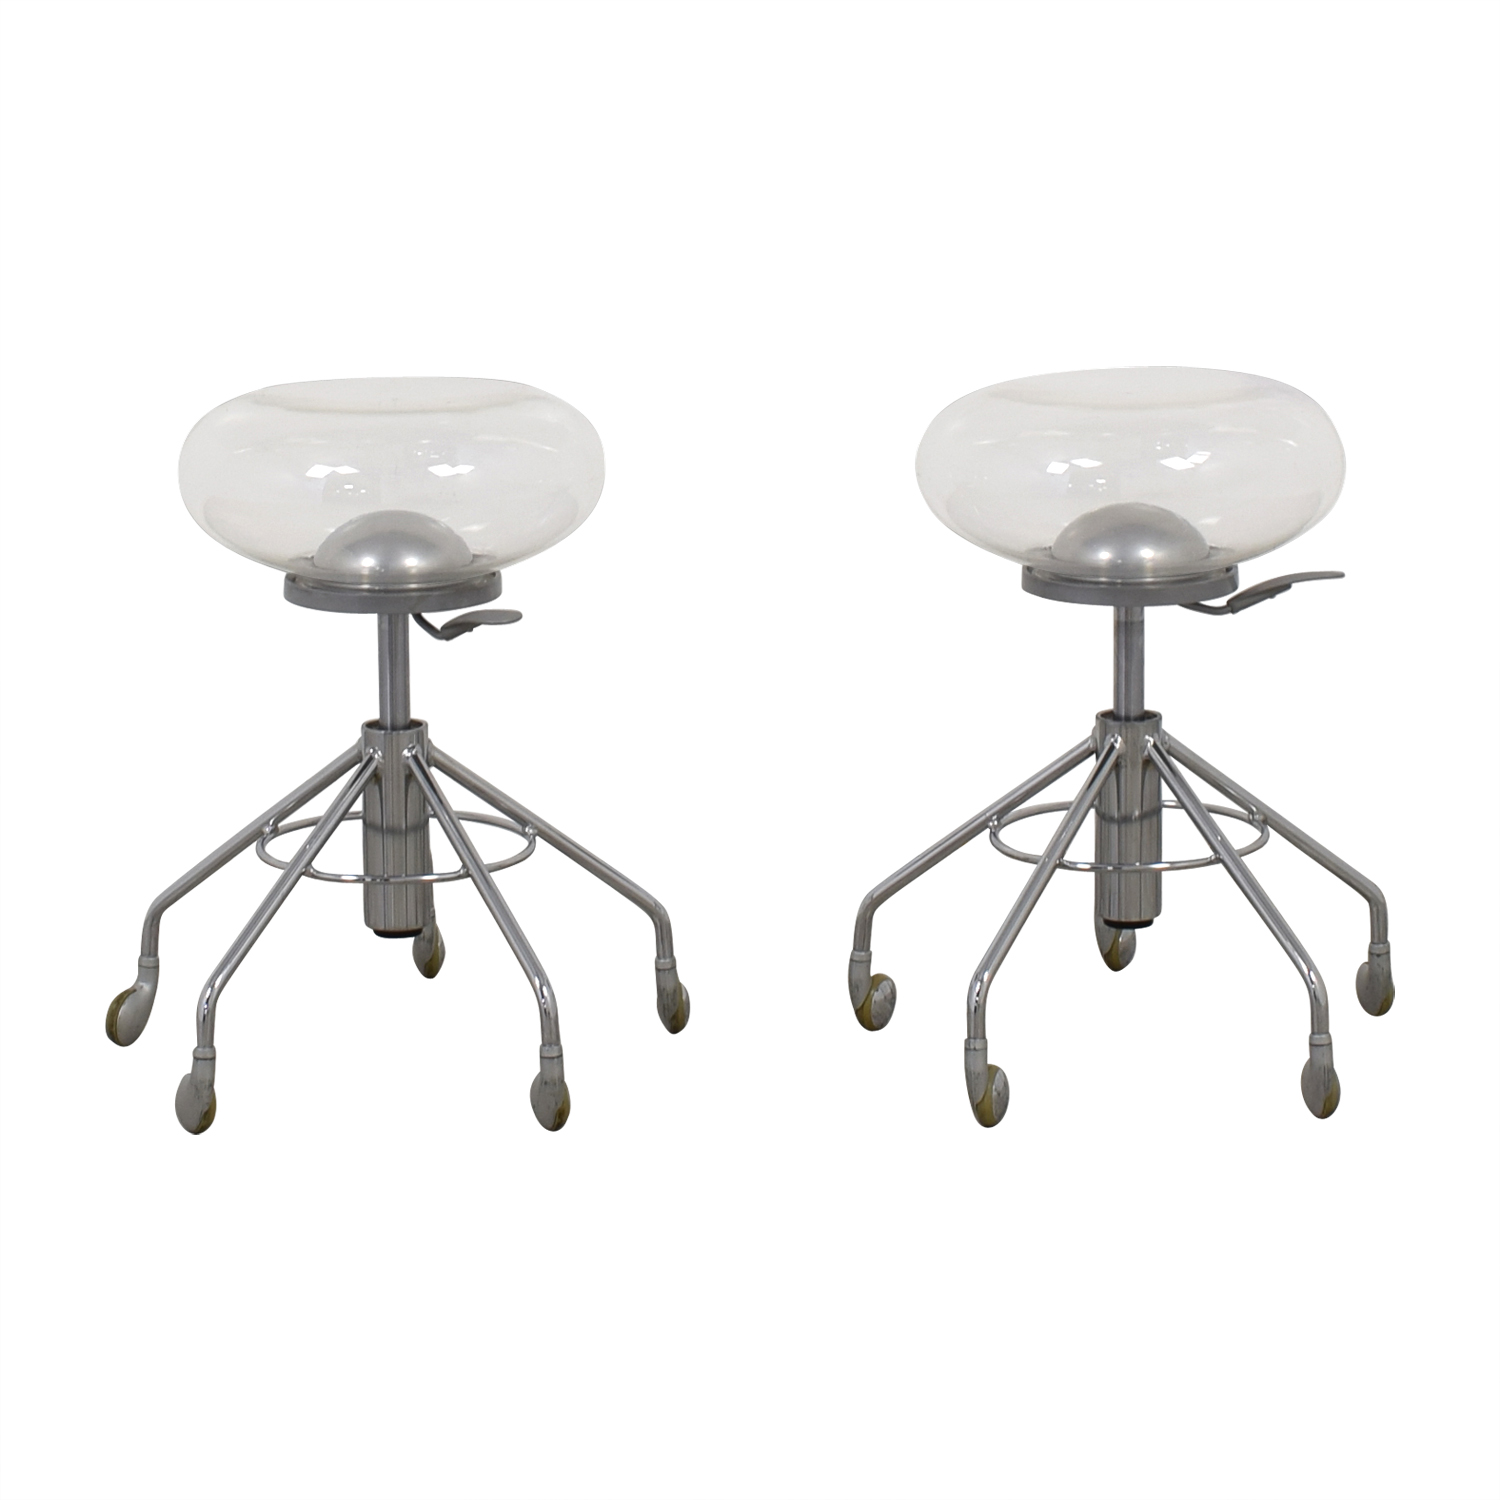 buy Archirivolto Design Delight Adjustable Chrome and Acrylic Bubble Stools Archirivolto Design Stools